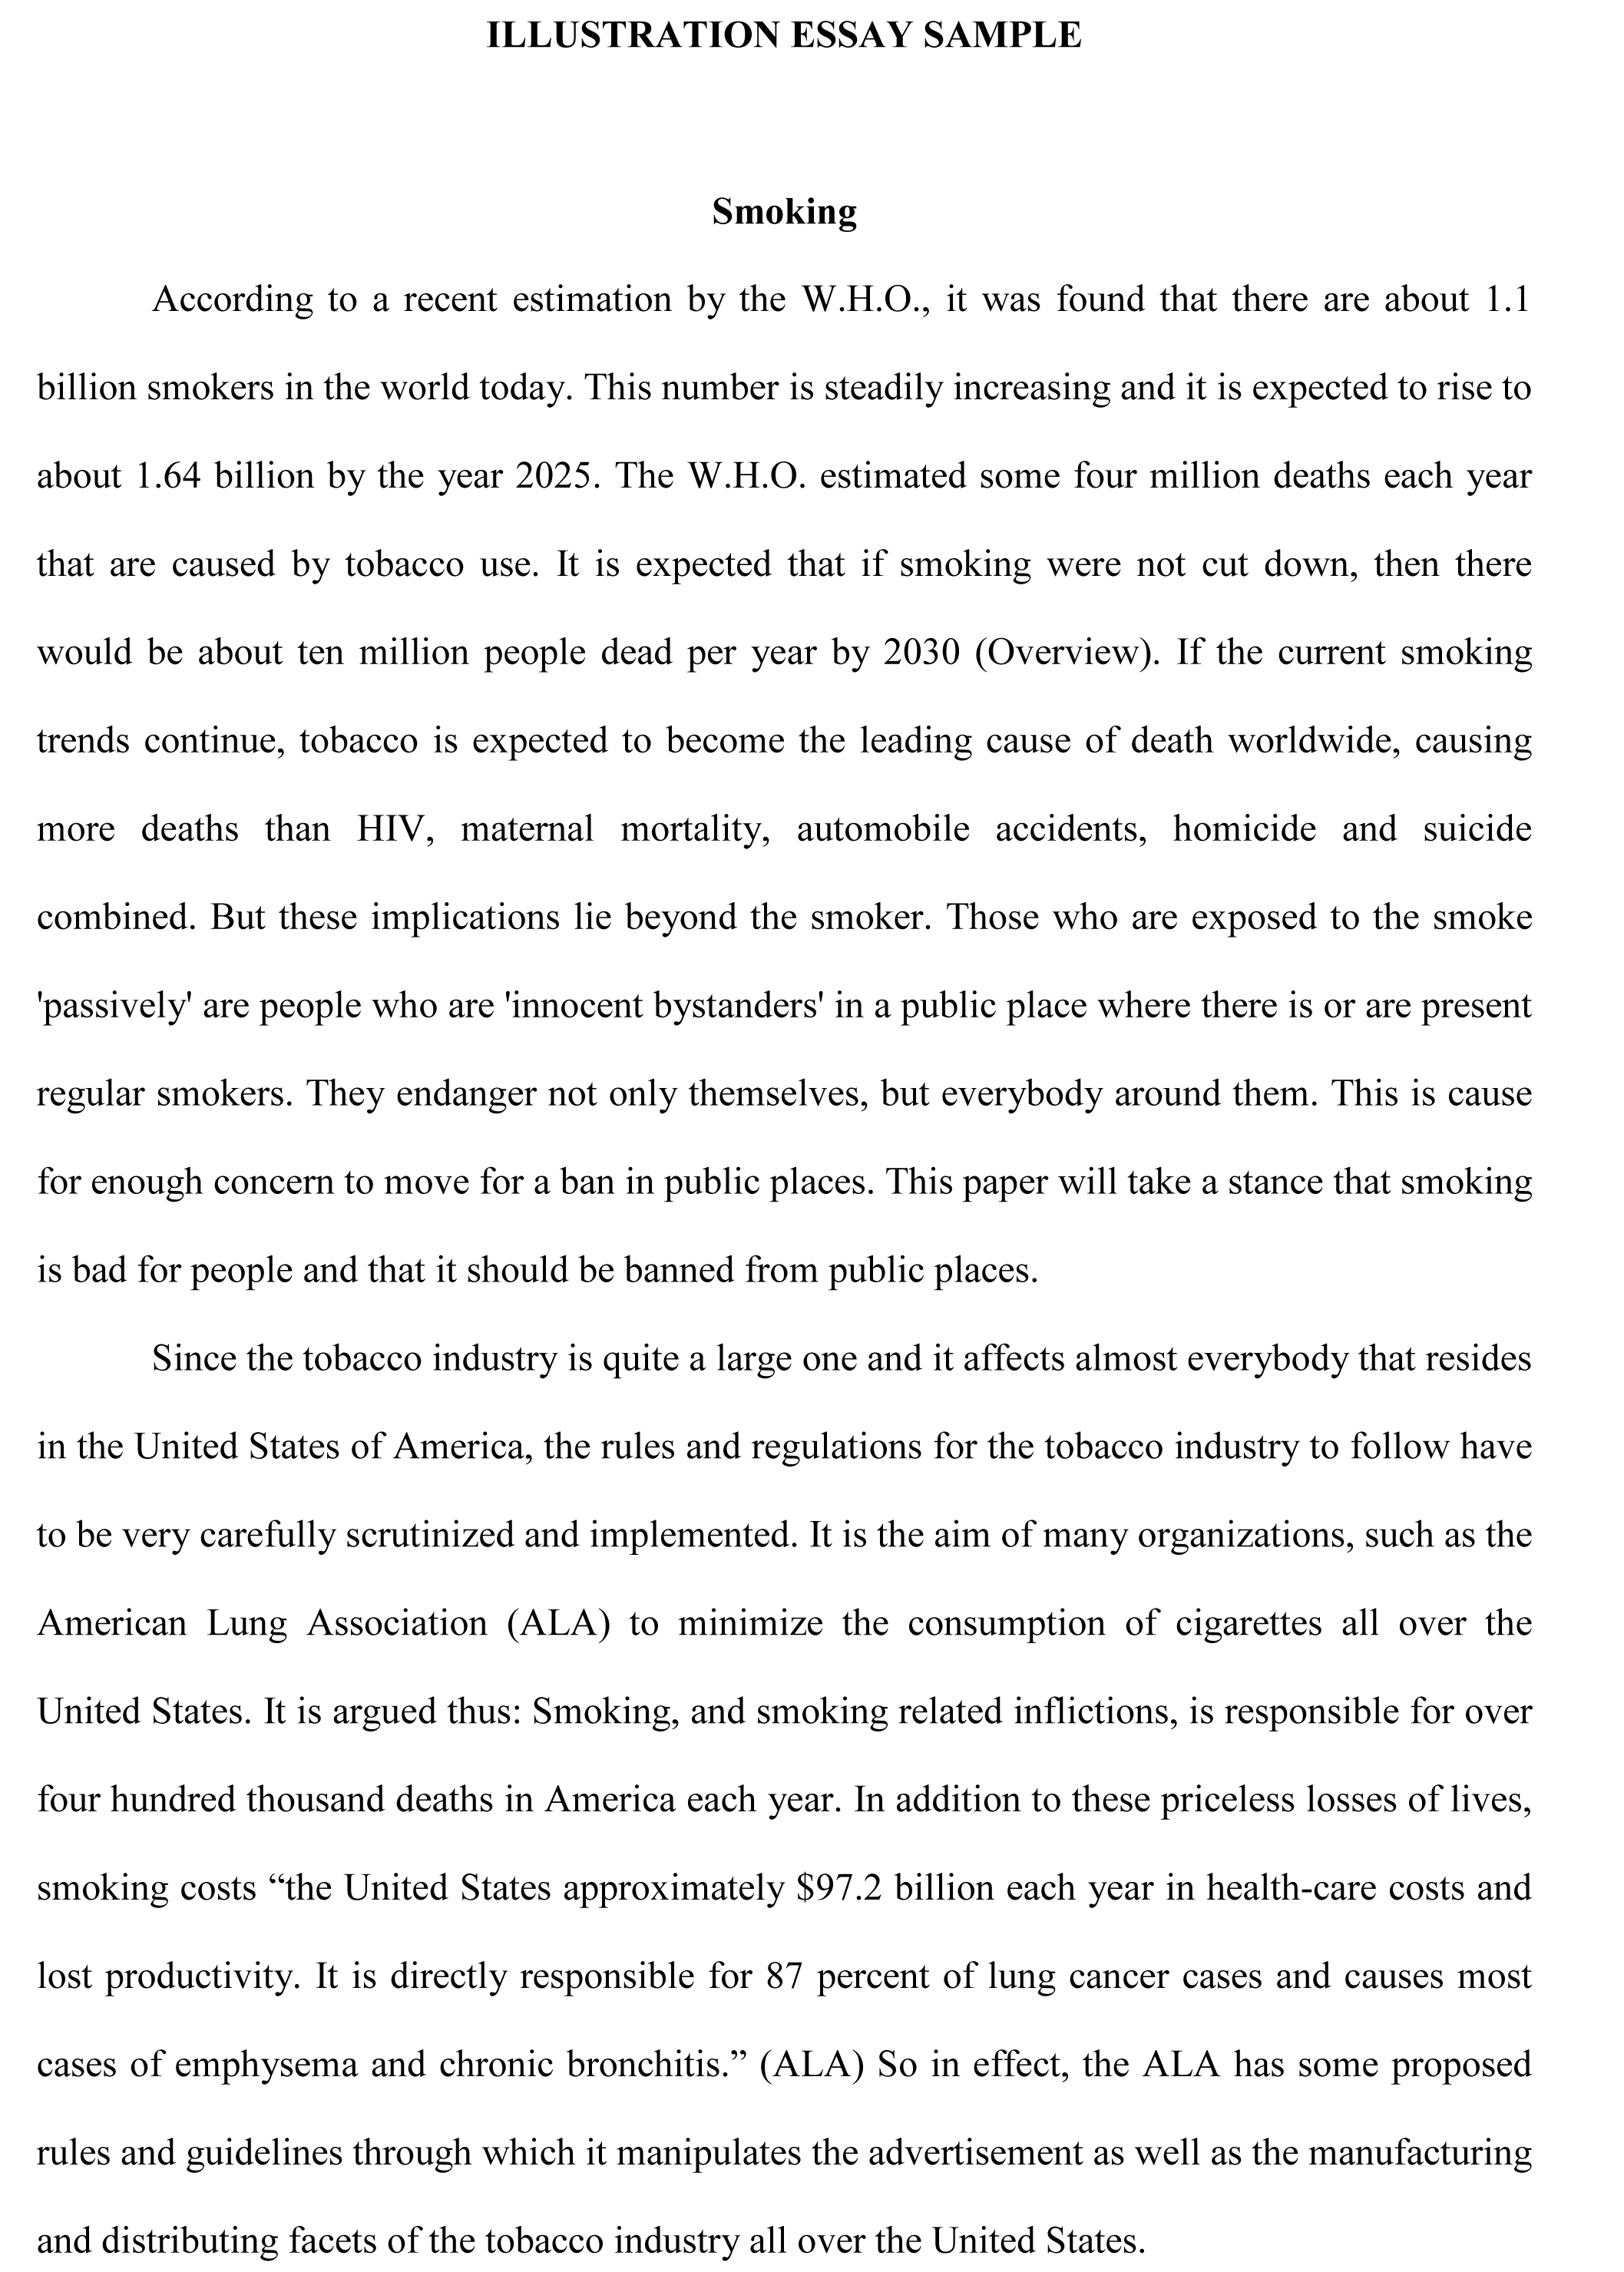 011 Essay Example Informative Introduction Examples Illustration Sample Frightening Paragraph Full